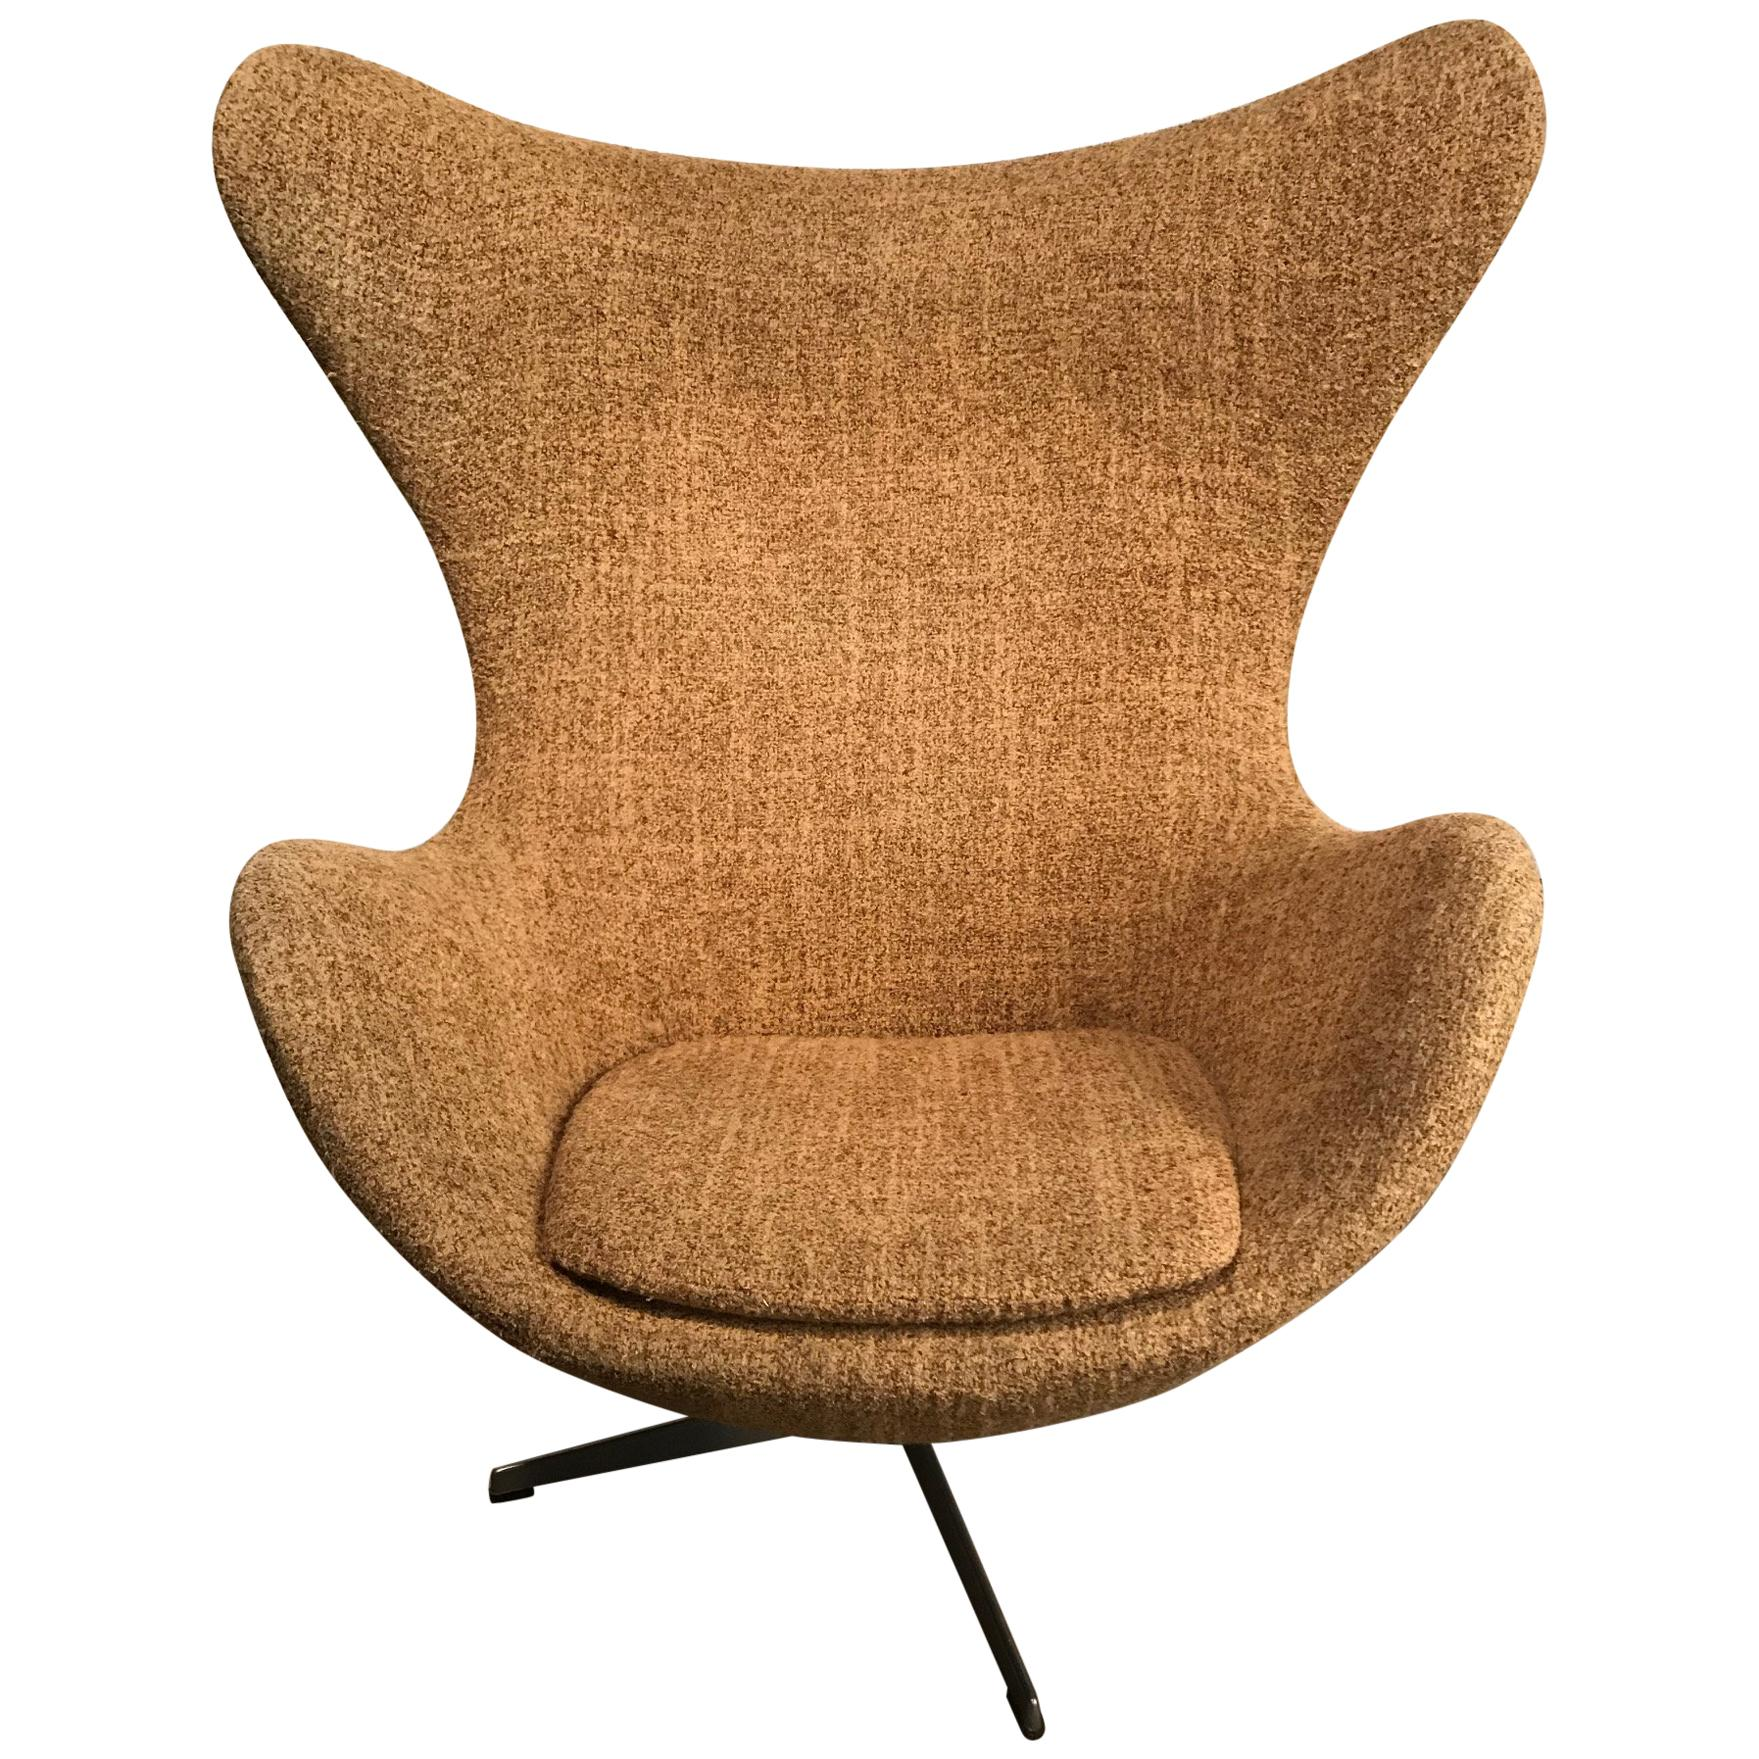 Egg Chairs For Sale Cheap Rare First Generation Egg Chair By Arne Jacobsen